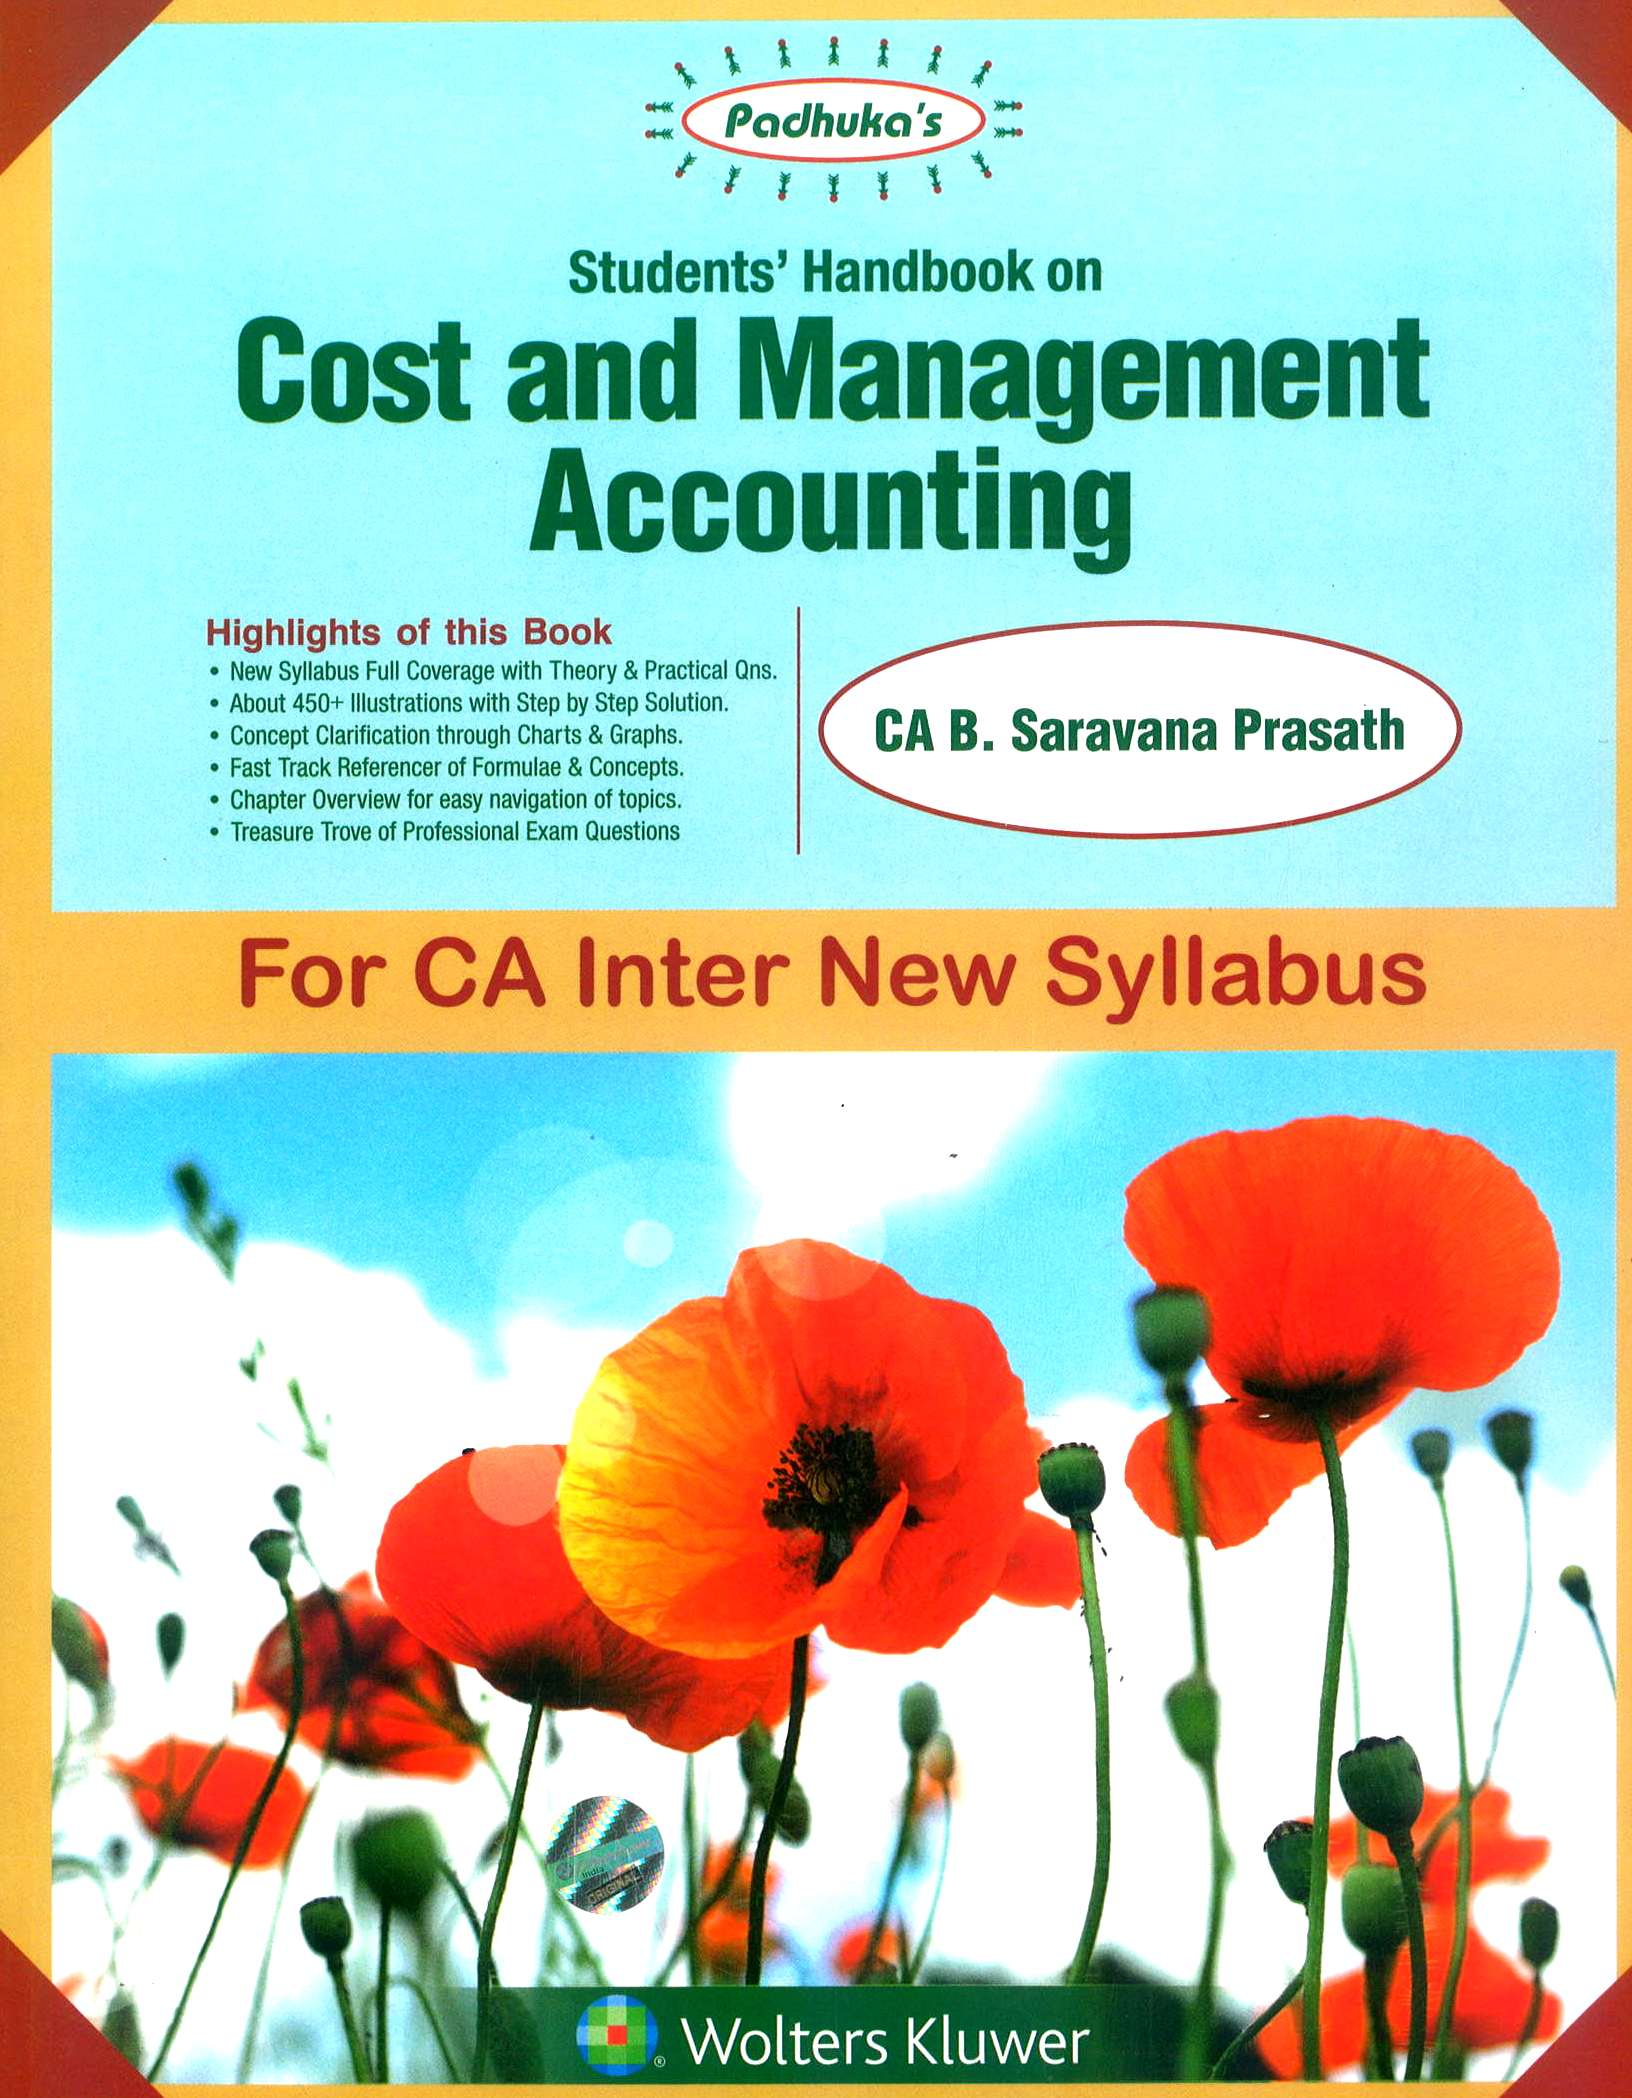 Padhuka Students' Handbook on Cost and Management Accounting By Ca B Saravana Prasath (Author) for Nov 2018 Exam (Wolters Kluwer Publishing)